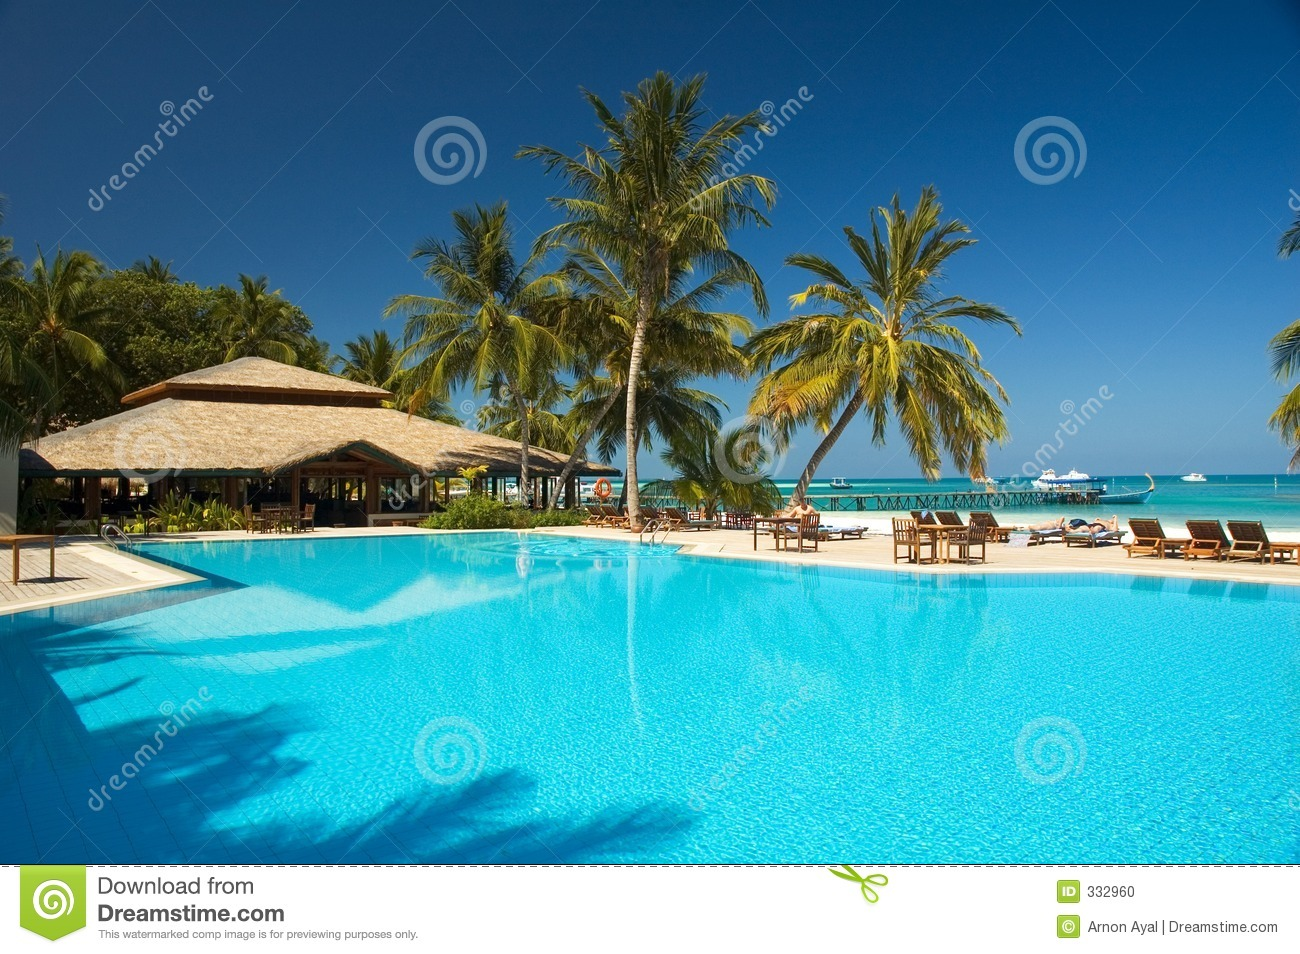 Tropic Zwembad Tropical Swimming Pool Stock Photo - Image: 332960